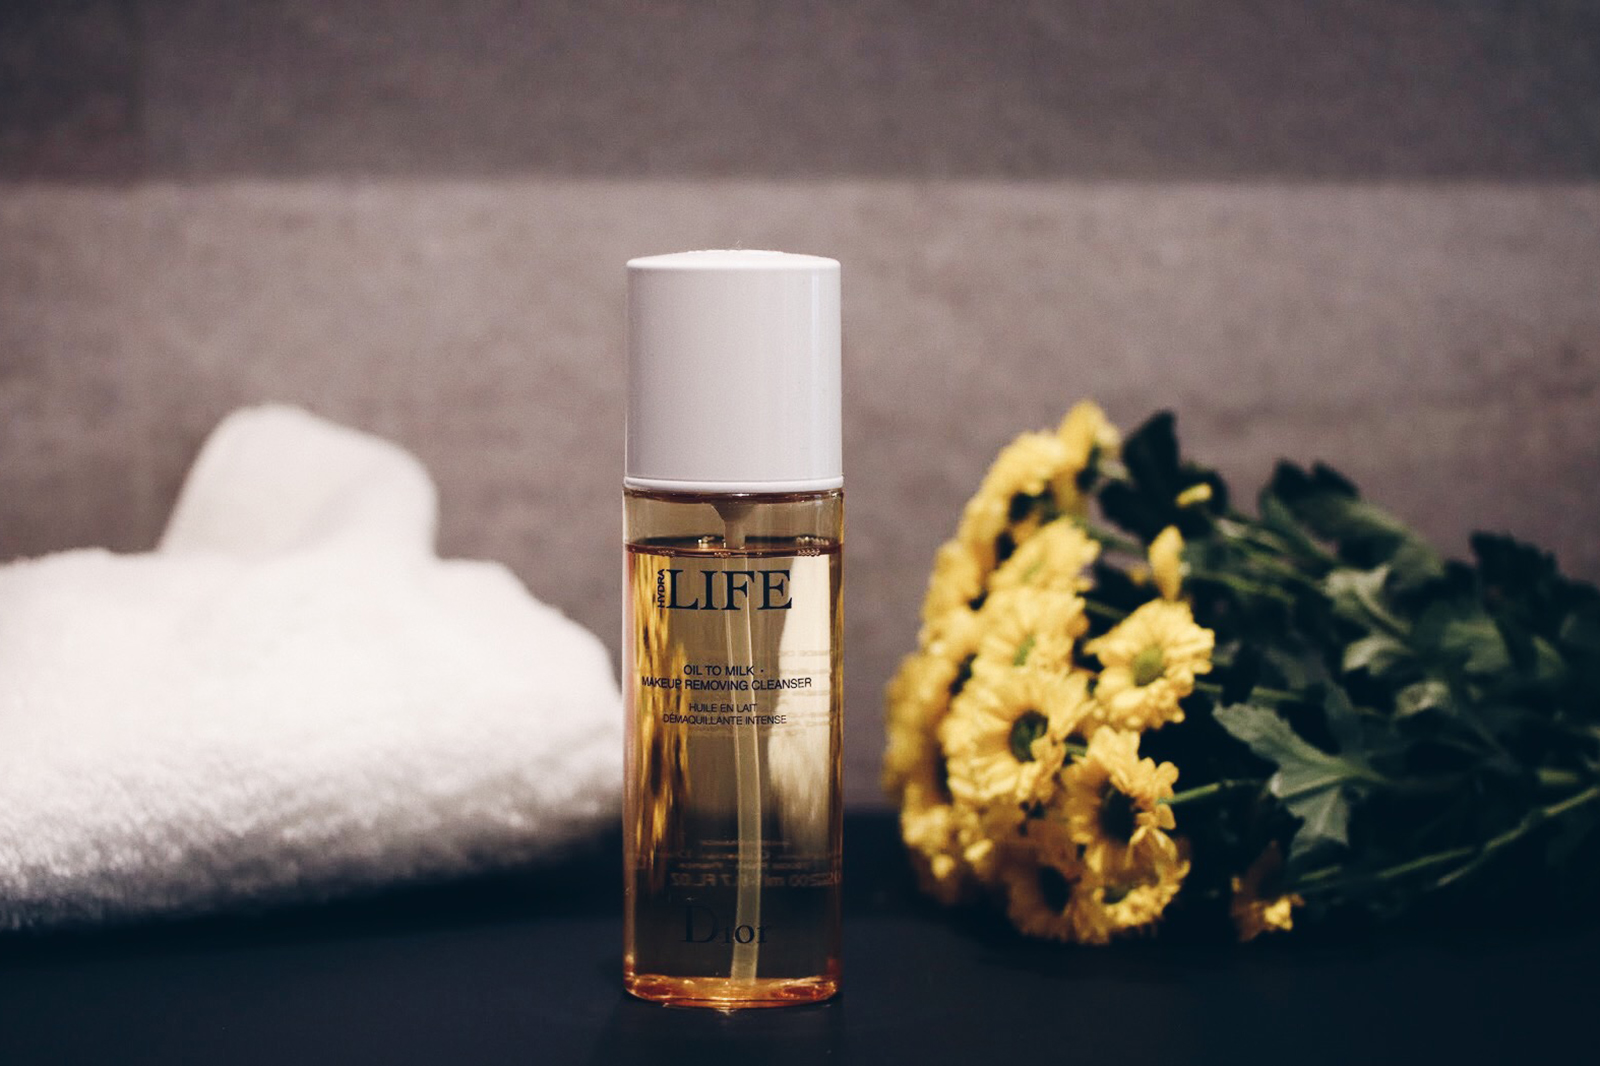 dior hydra life oil to milk huile démaqquillante avis test